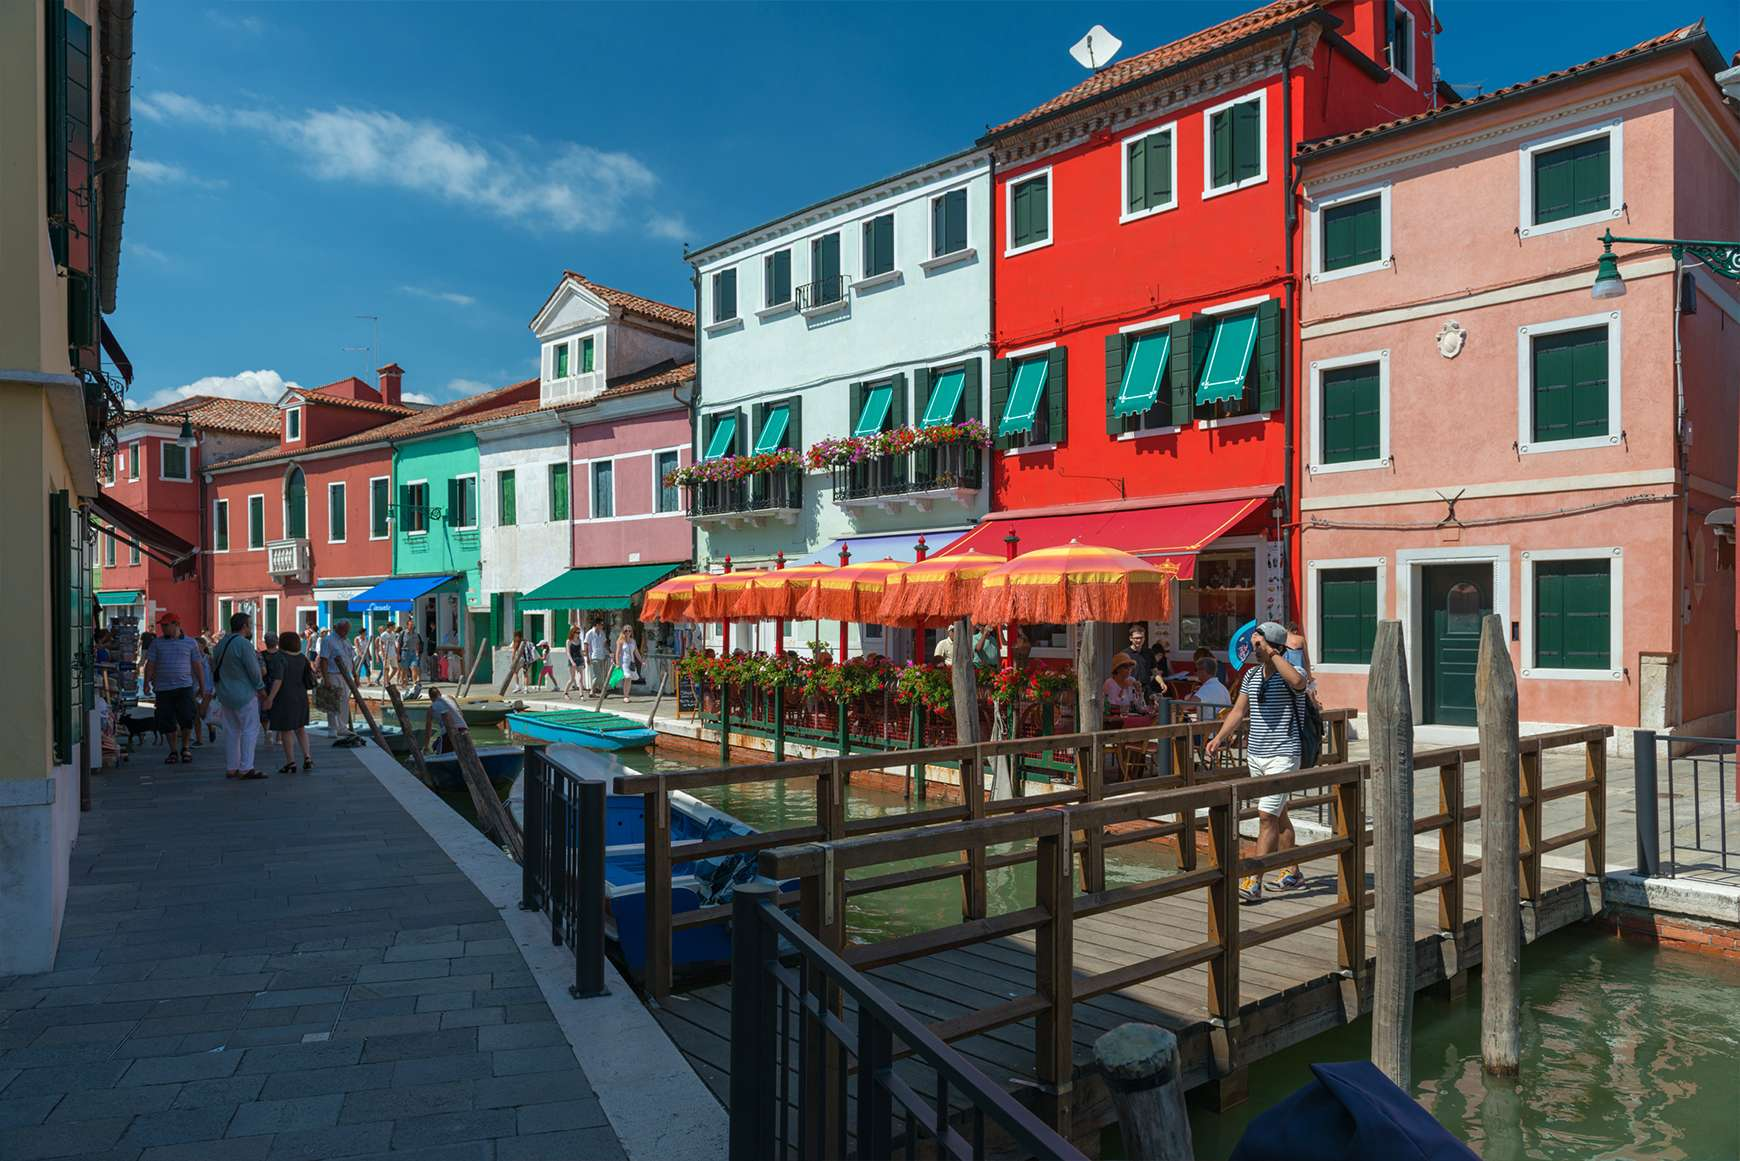 Colorful buildings alongside a canal on the island of Burano in Venice